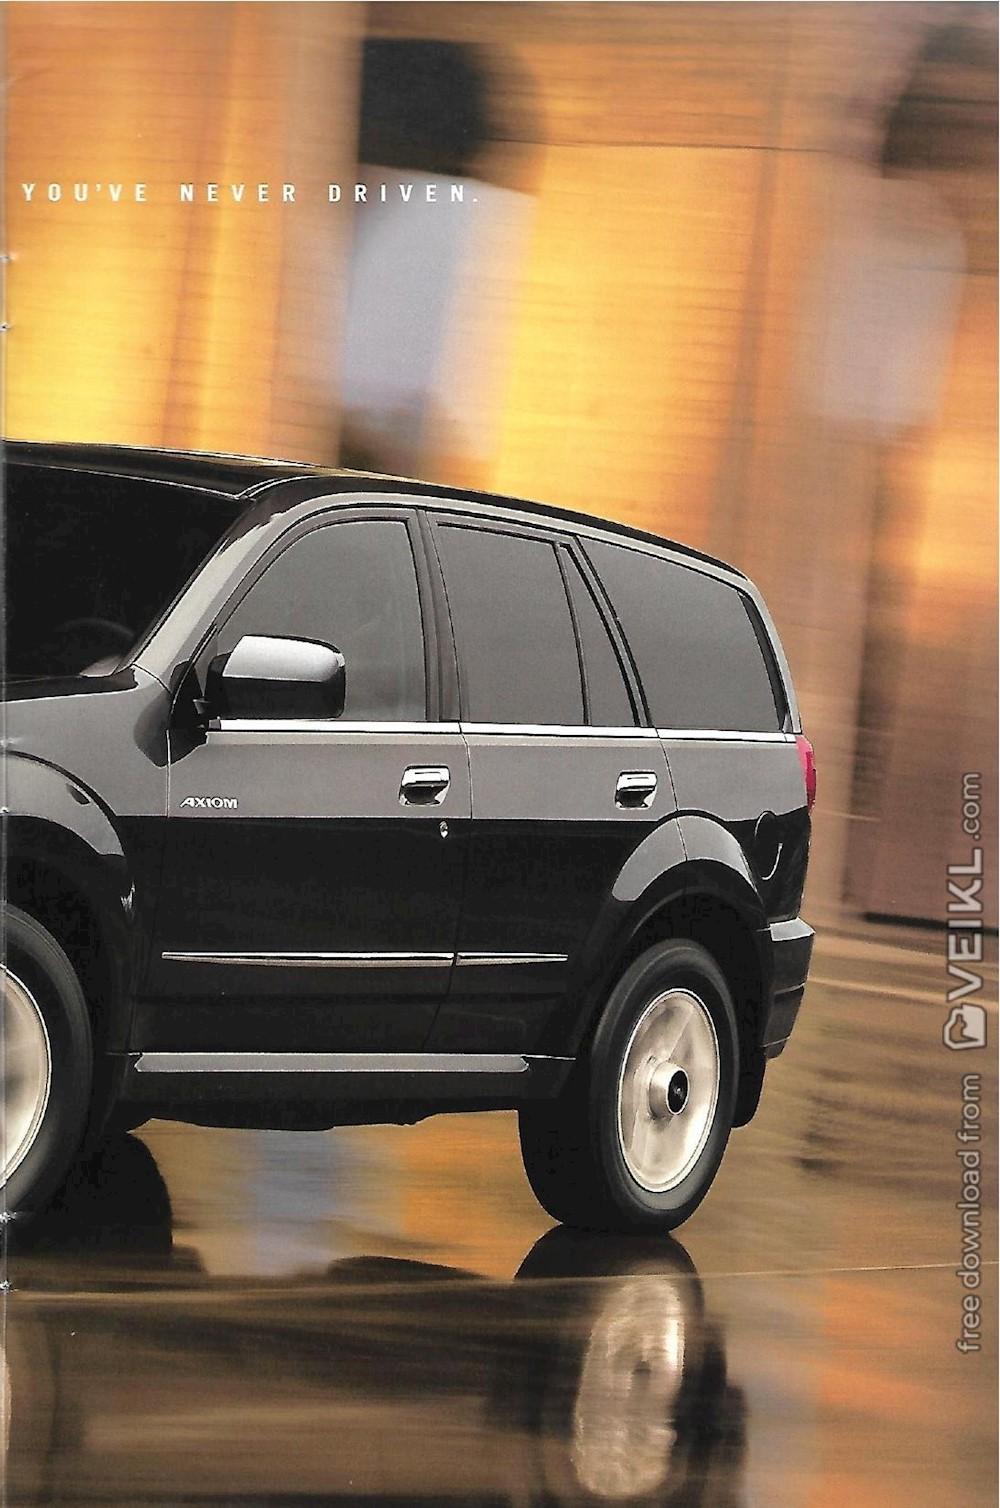 Isuzu Axiom Brochure 2002 EN